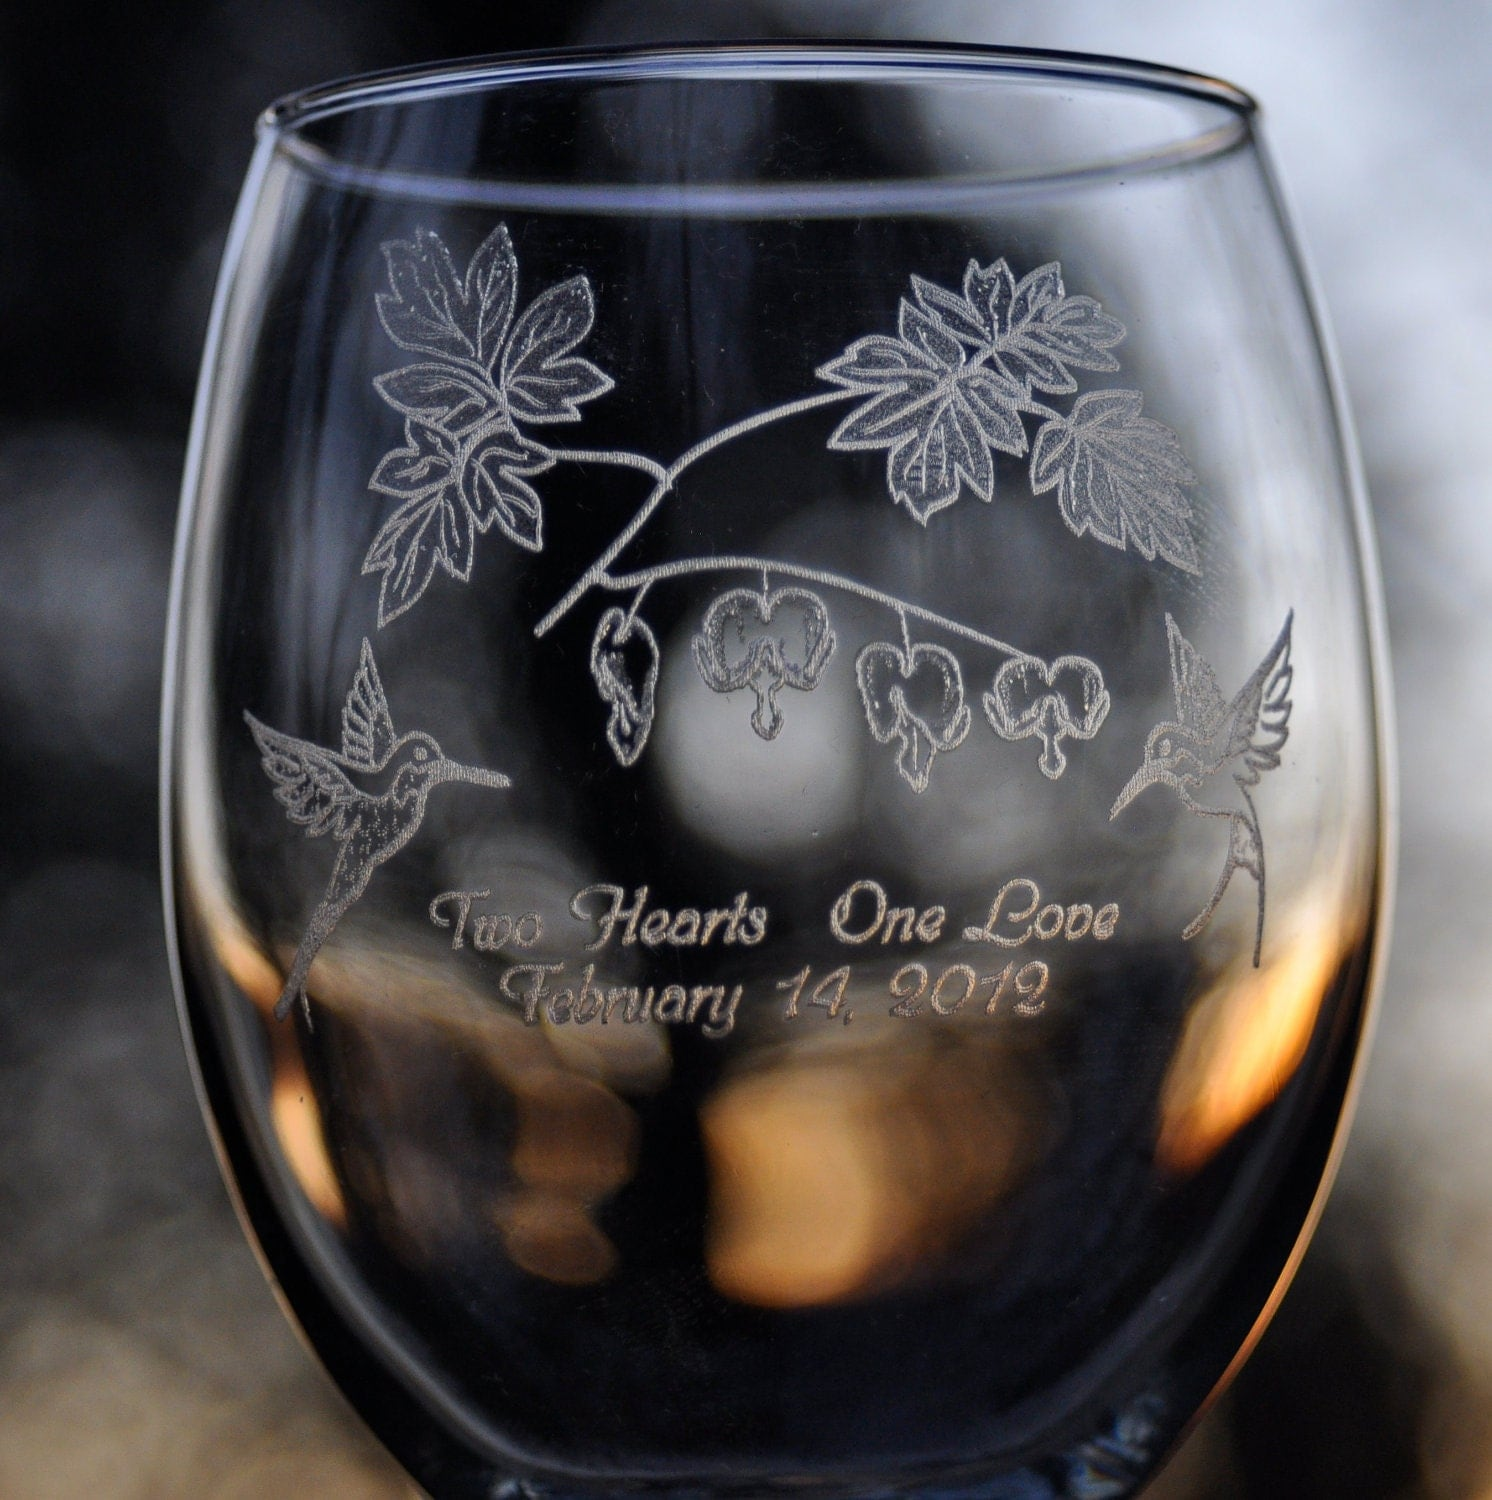 2 Hearts One Love - Pair of 12 oz White Wine Glasses - ($20)